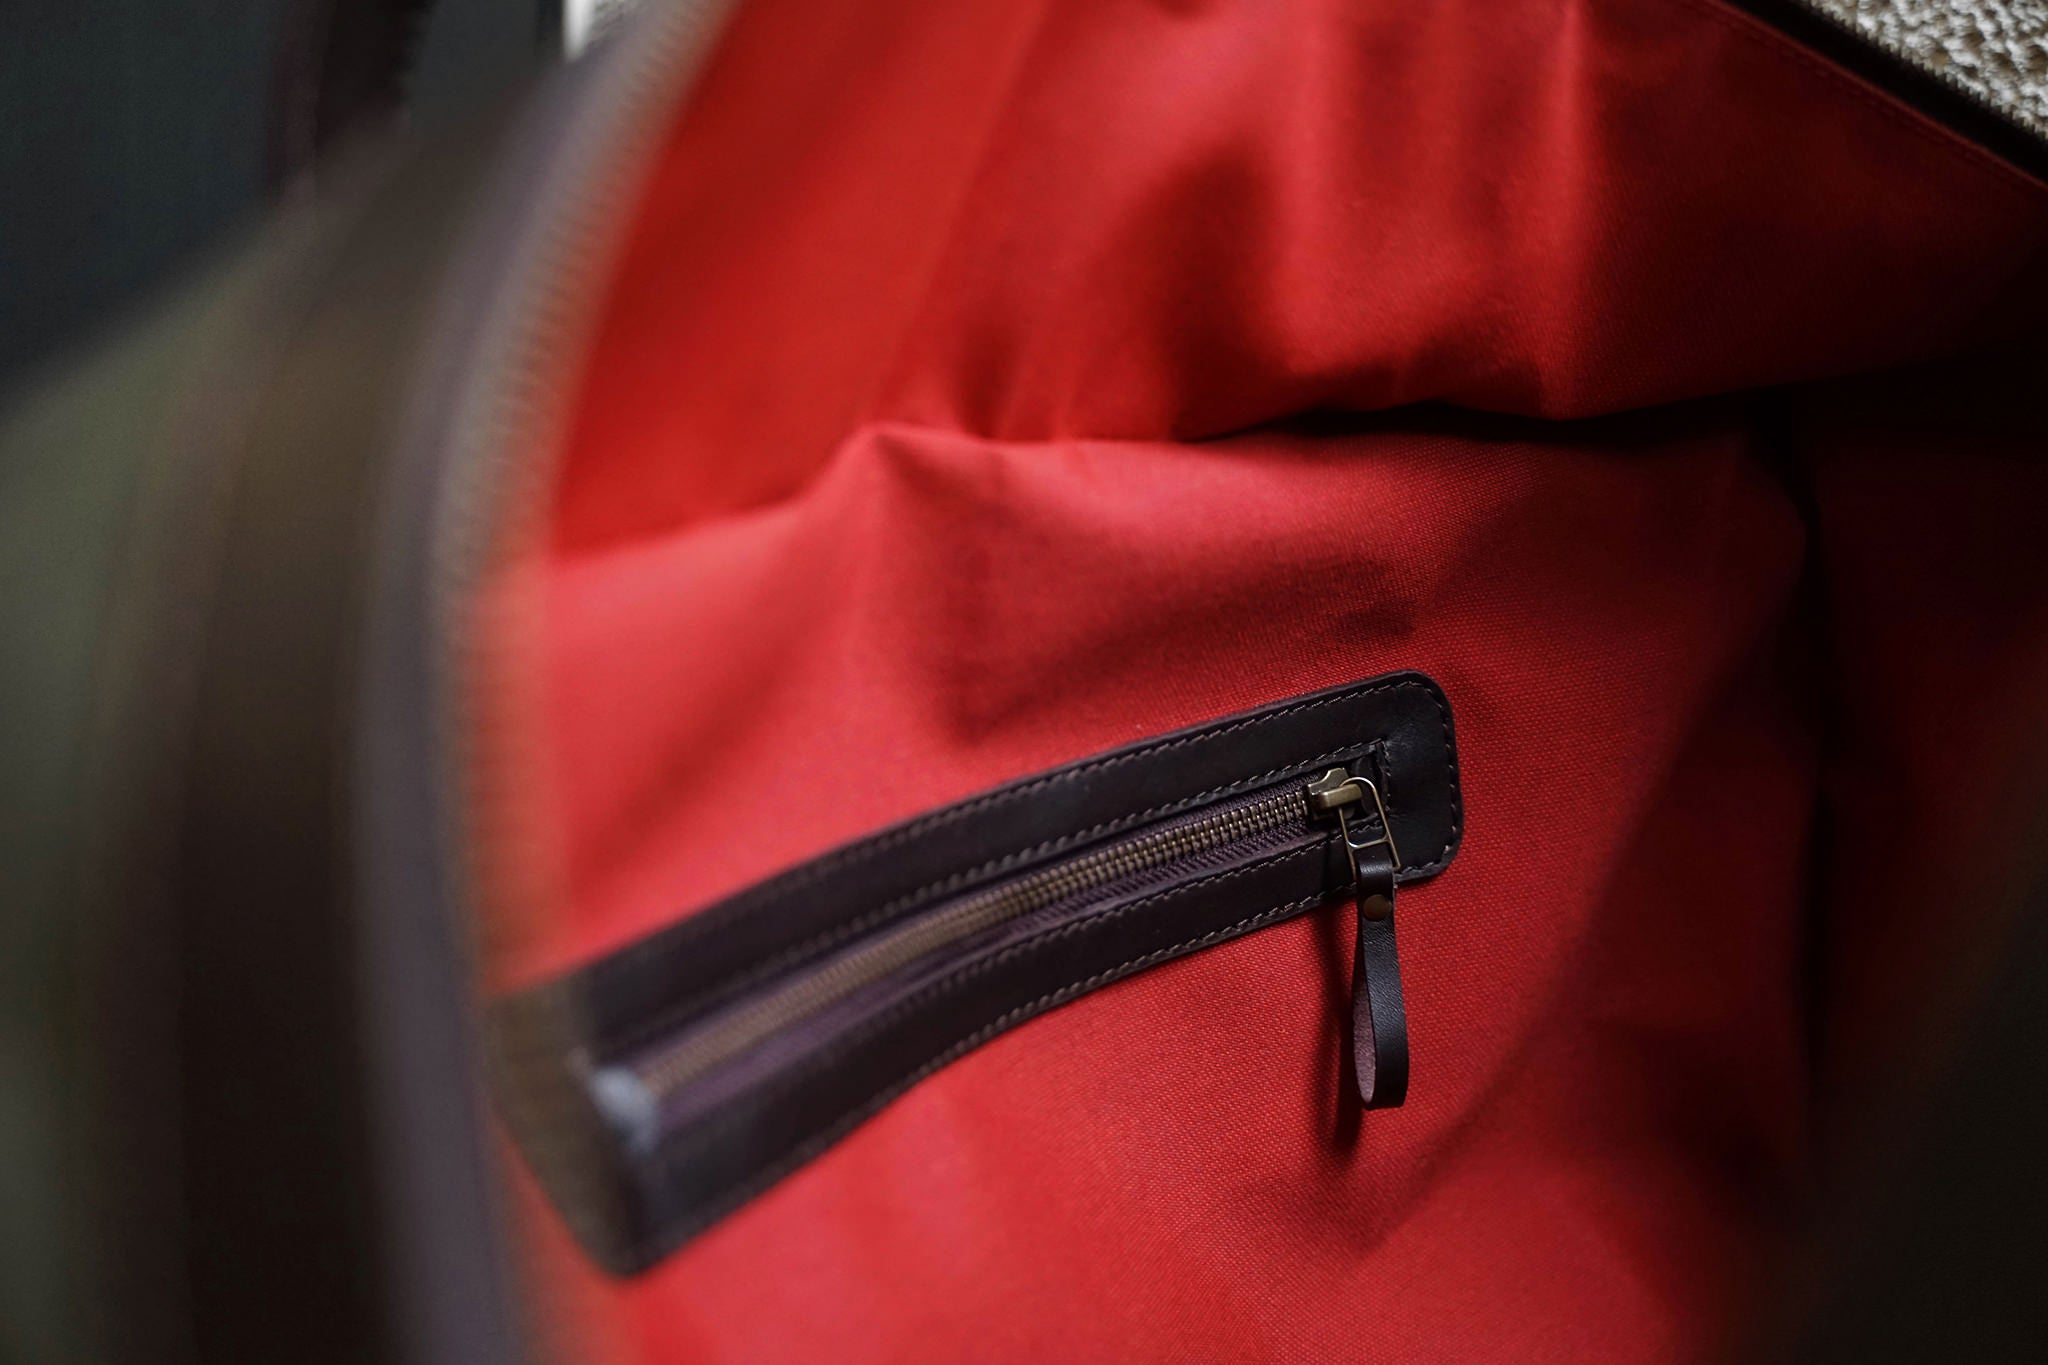 One zippered pocket inside.